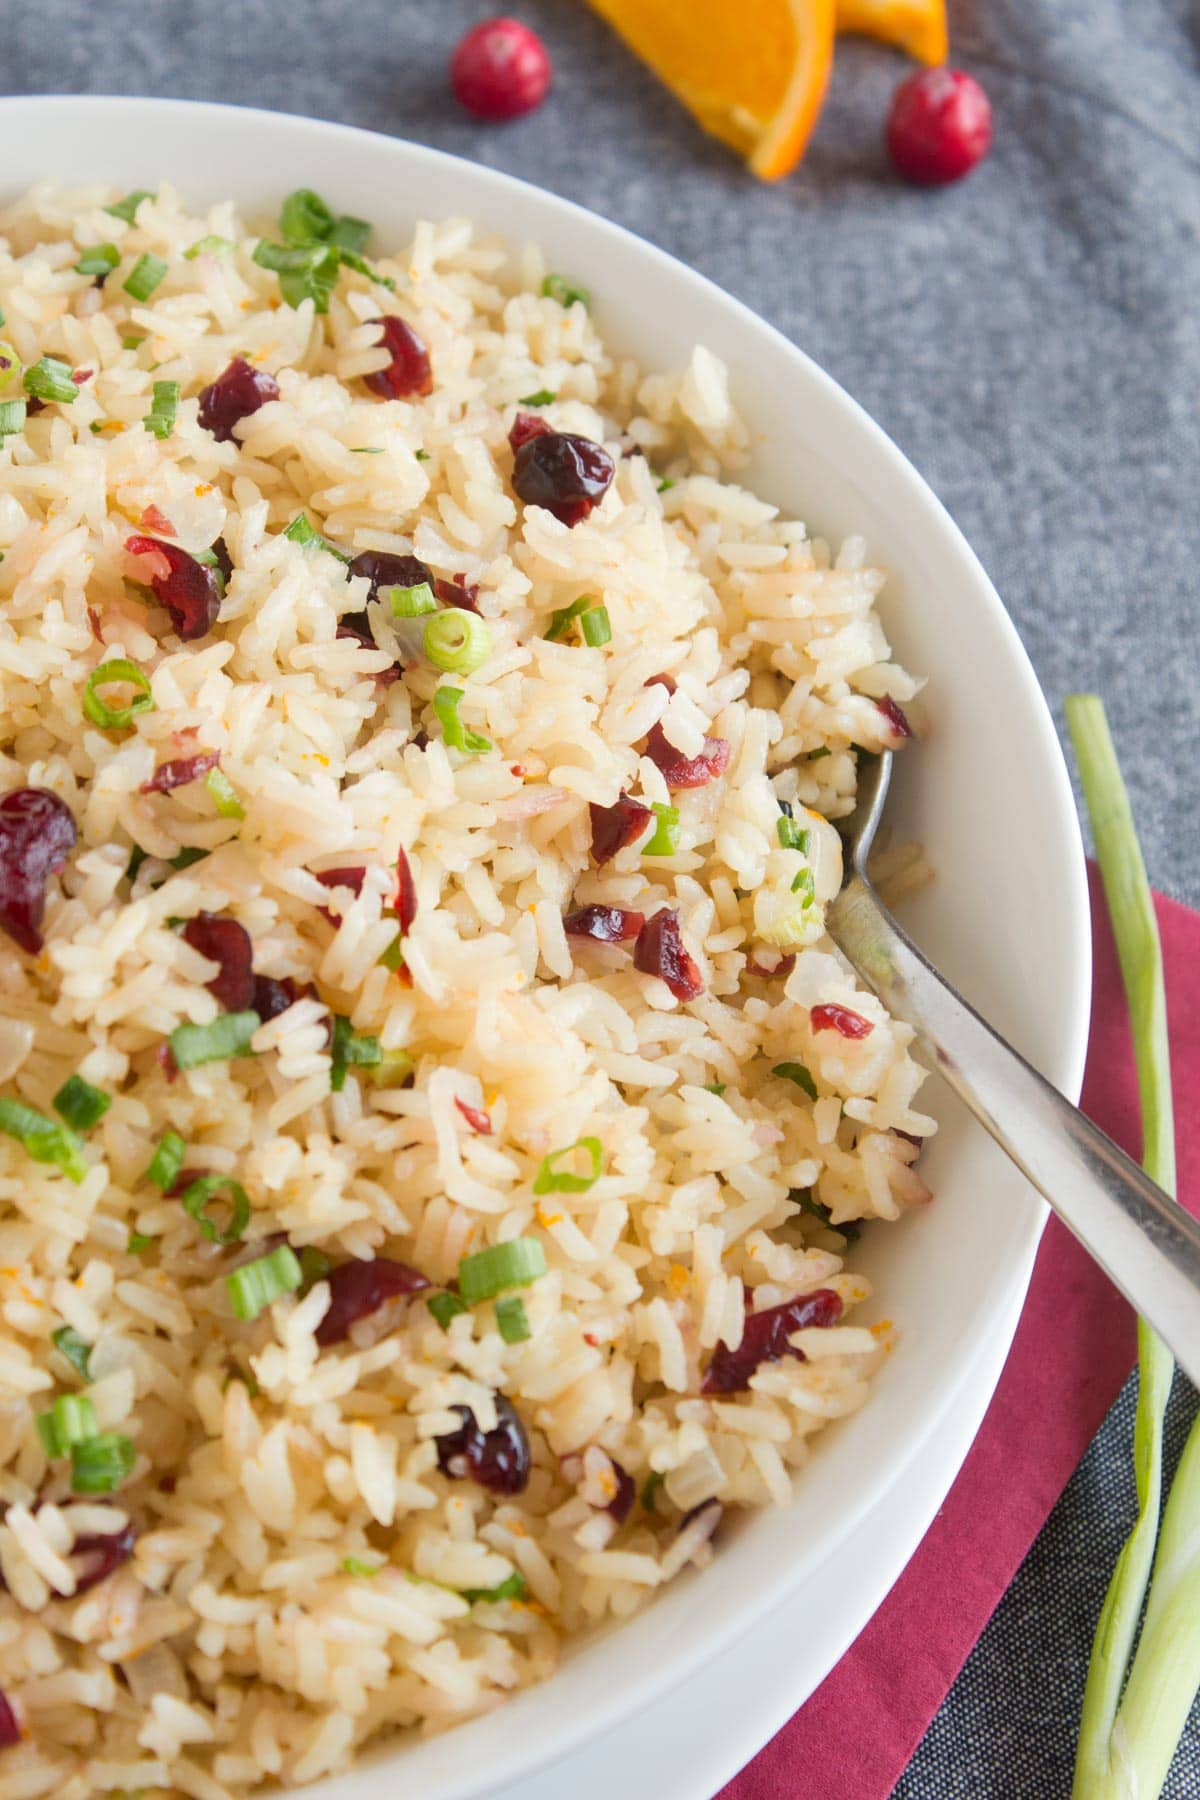 White rice made with orange juice and cranberries in white bowl.